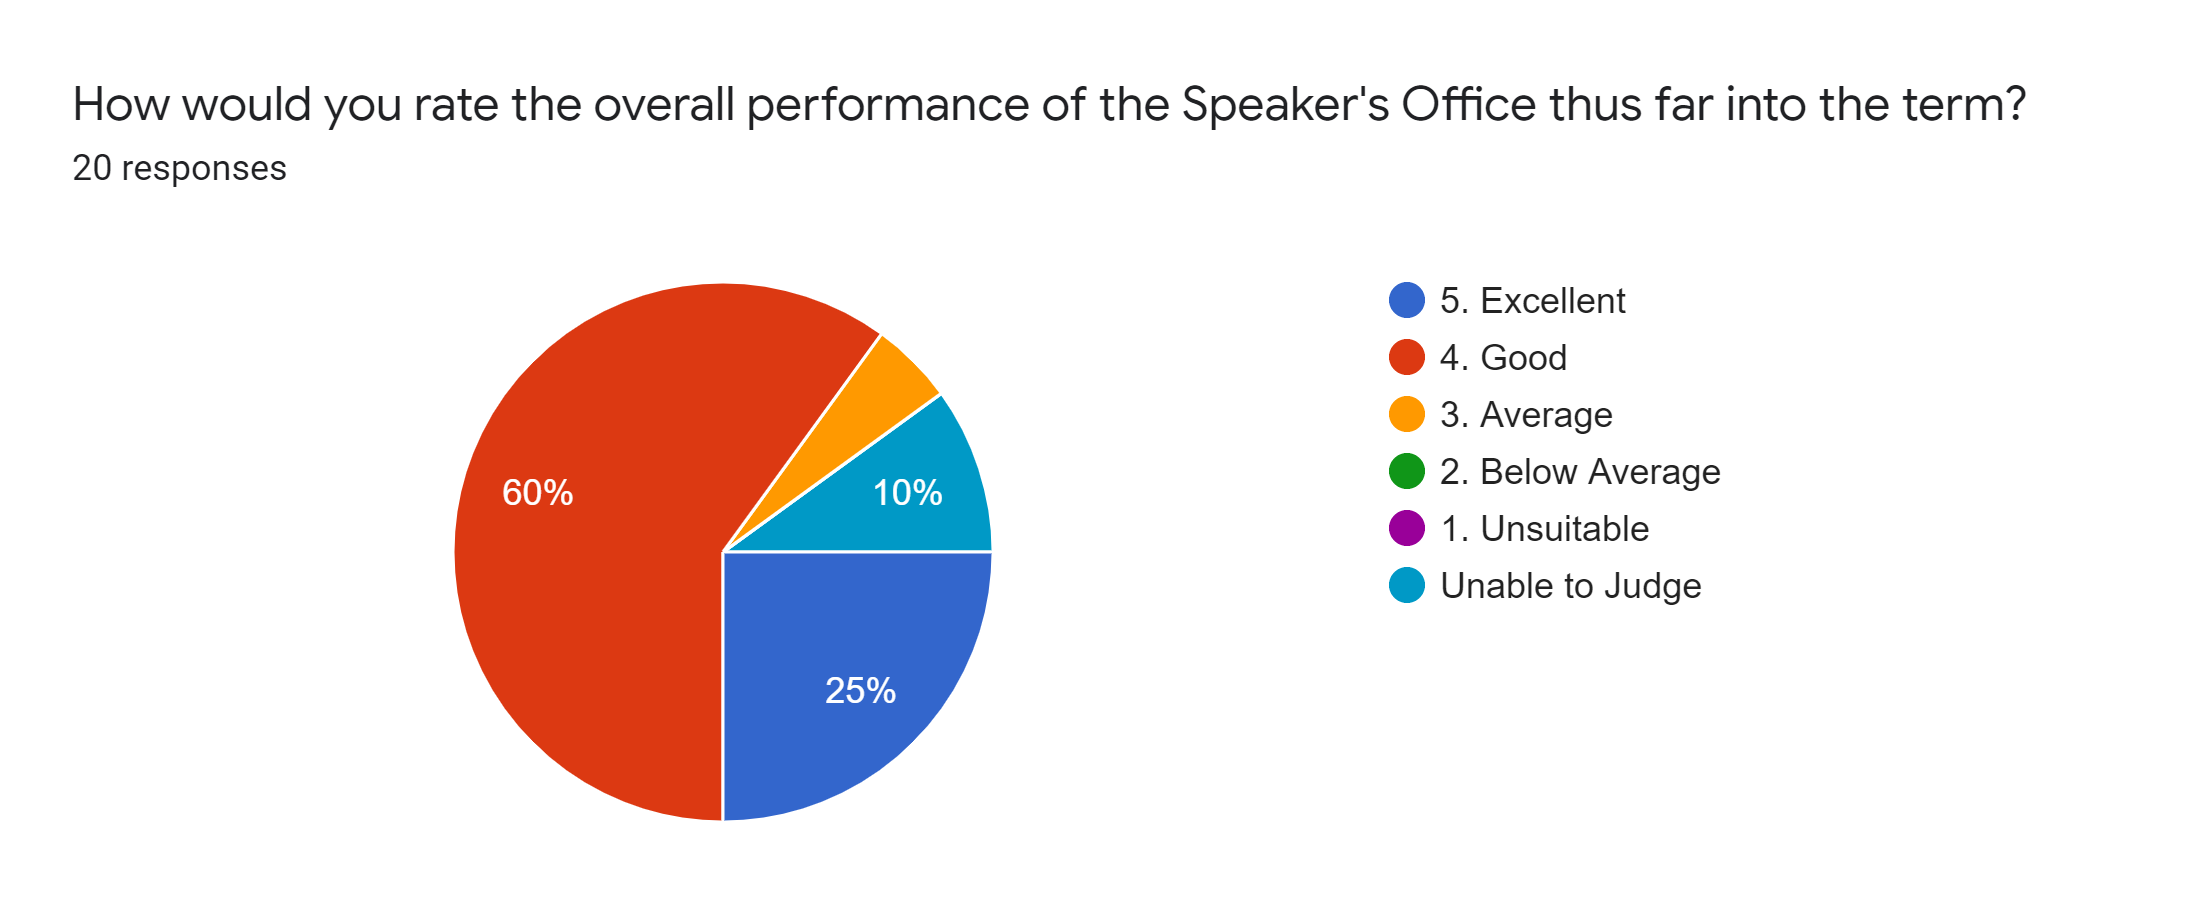 Forms response chart. Question title: How would you rate the overall performance of the Speaker's Office thus far into the term?. Number of responses: 20 responses.